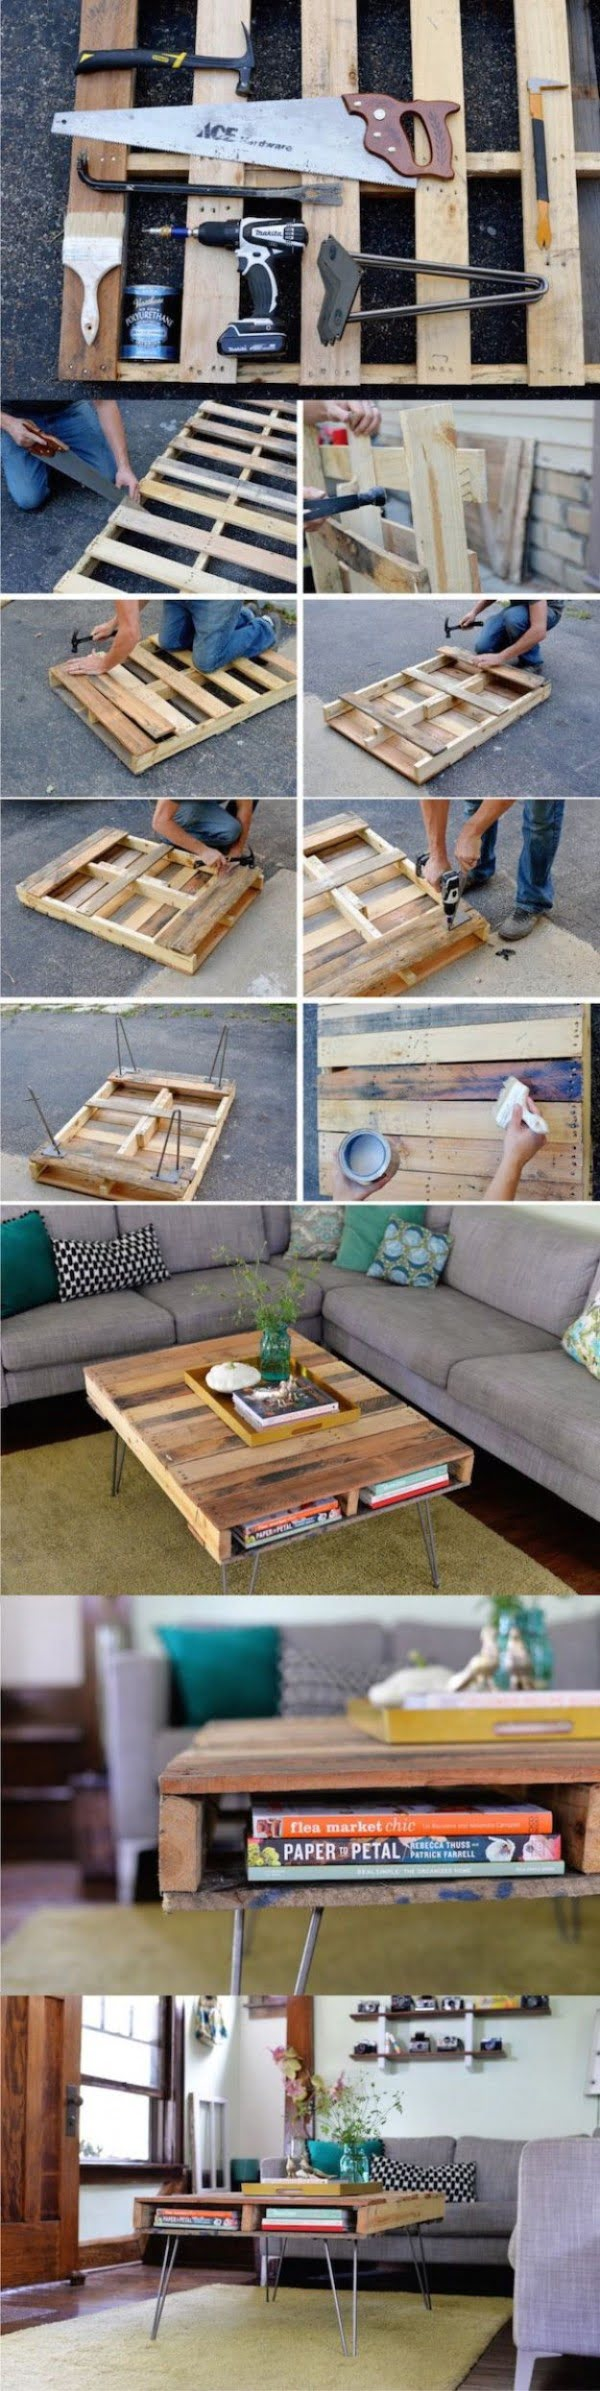 How to make an easy #DIY coffee table for your home from pallet wood. Worth a try! #homedecorideas